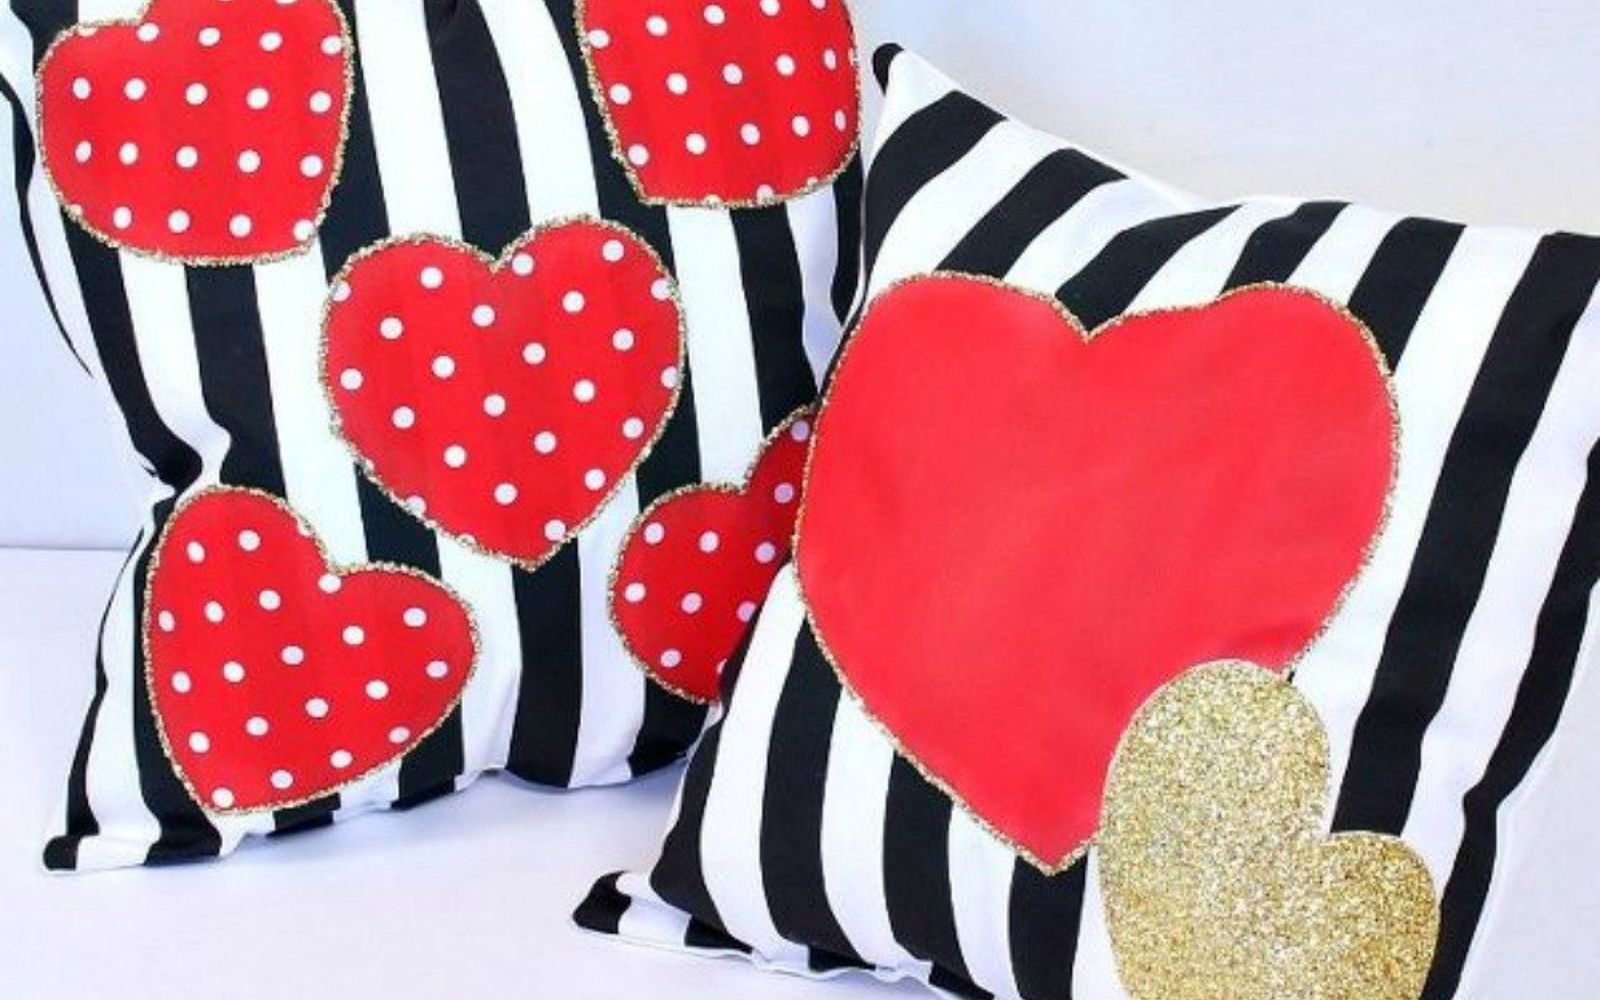 s 20 heartfelt valentine s day gifts for under 20, seasonal holiday decor, valentines day ideas, Decorate your throw pillows with hearts